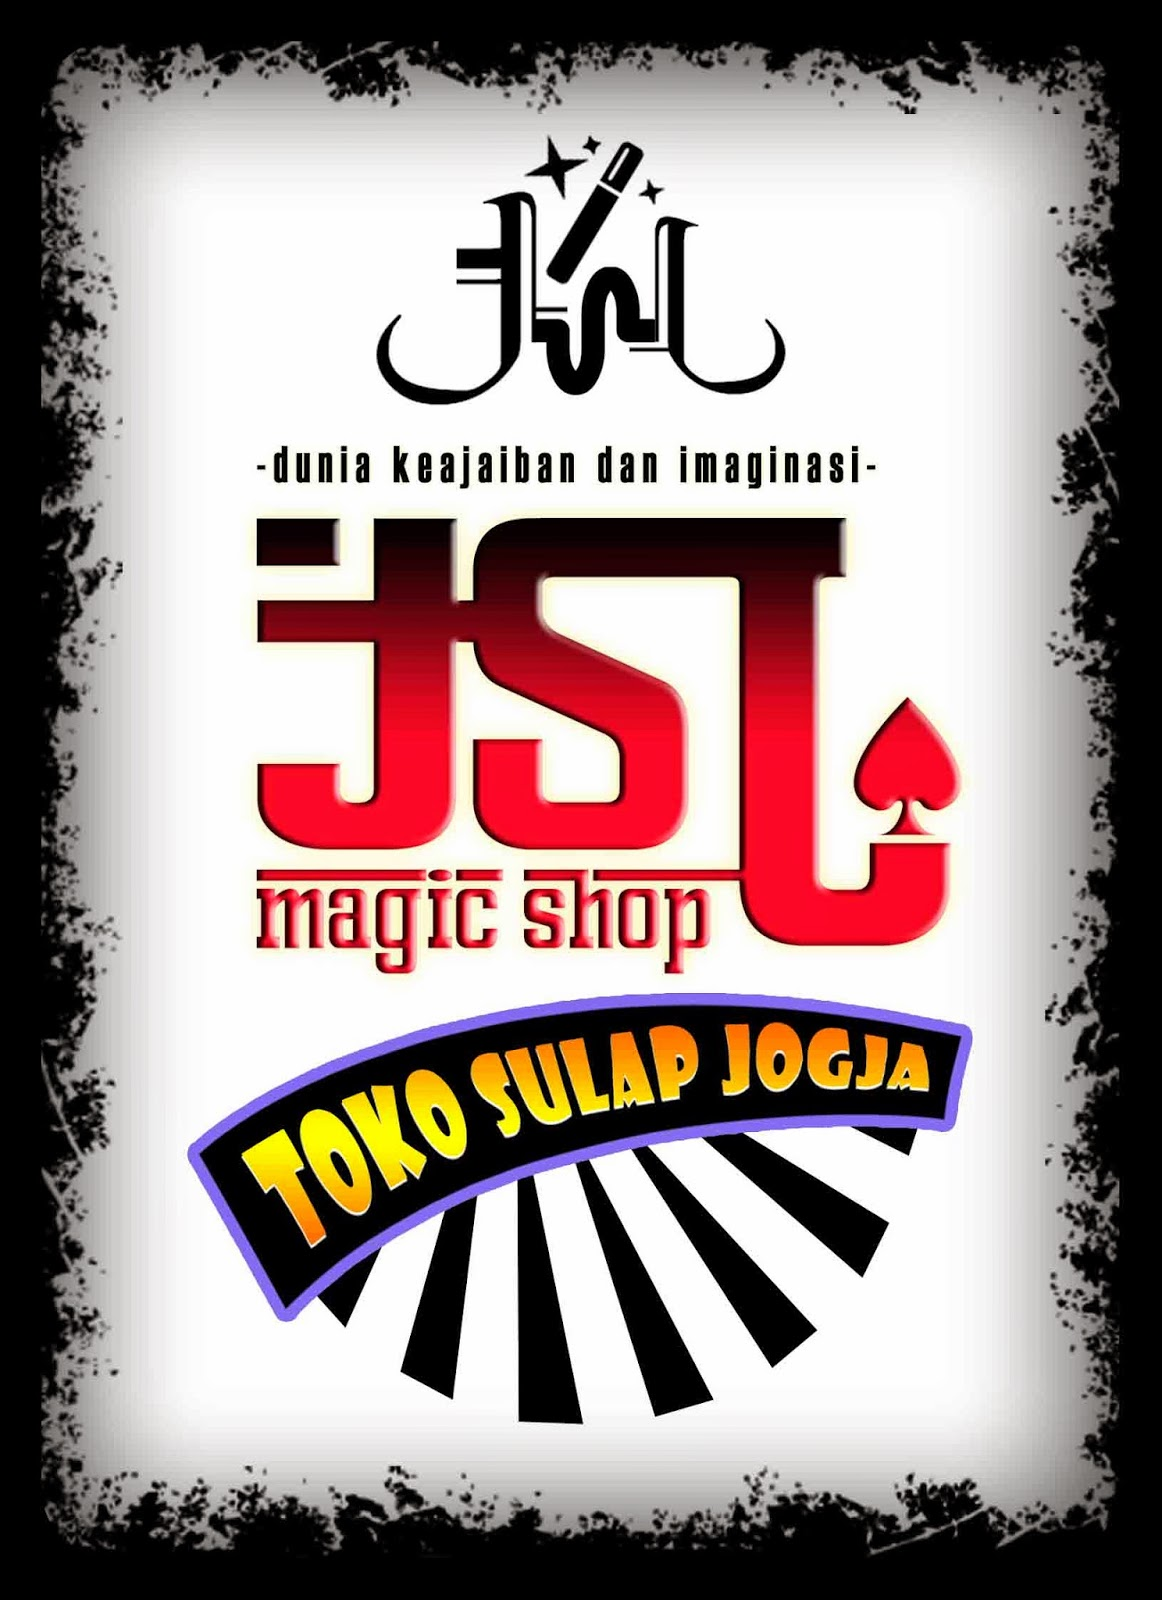 TOKO SULAP JOGJA SPLIT SECOND MAGIC